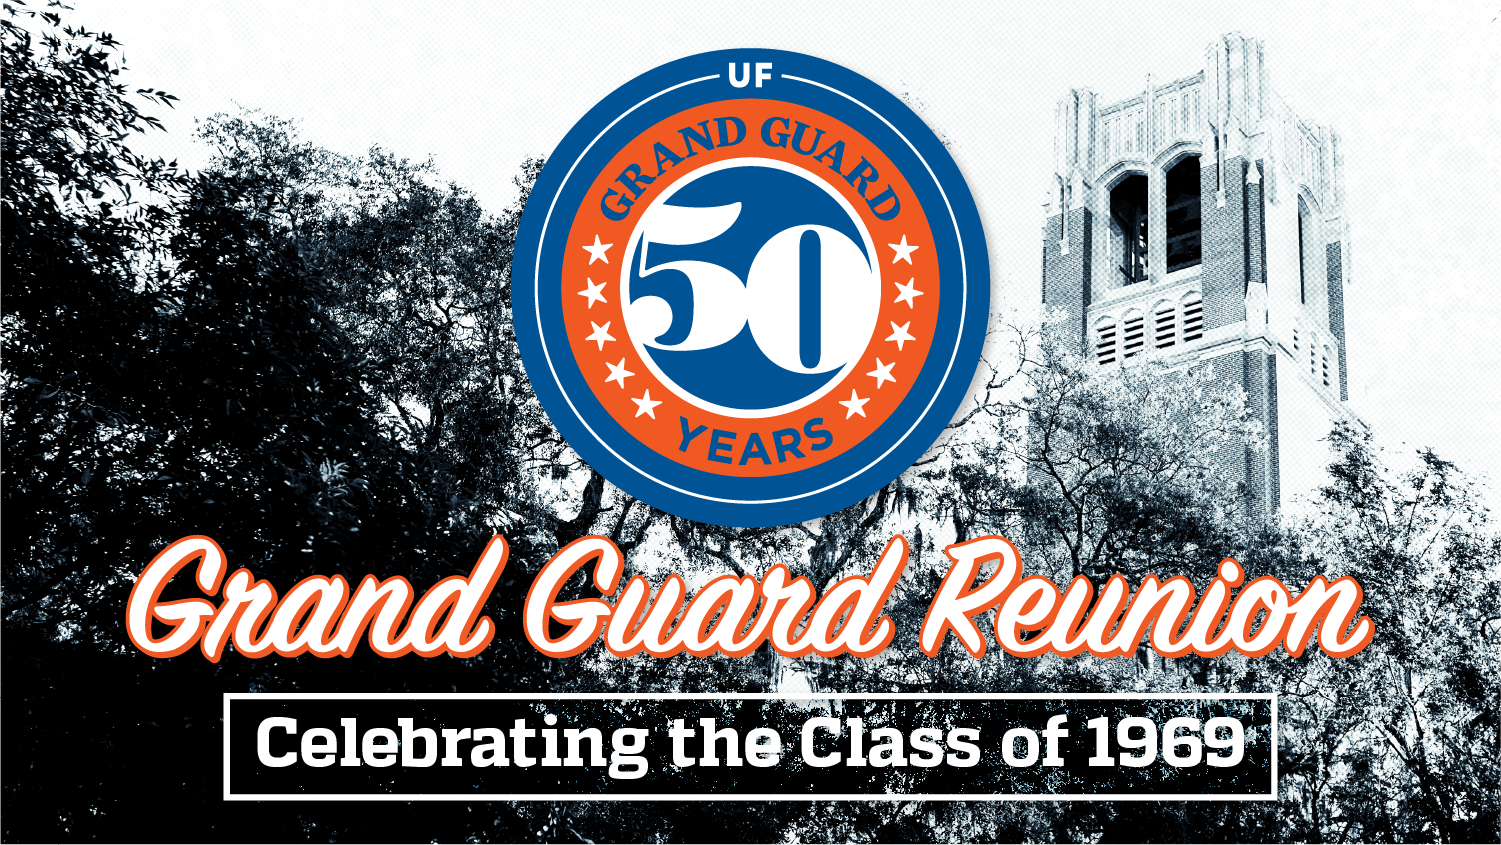 Class of 1969 Grand Guard Reunion